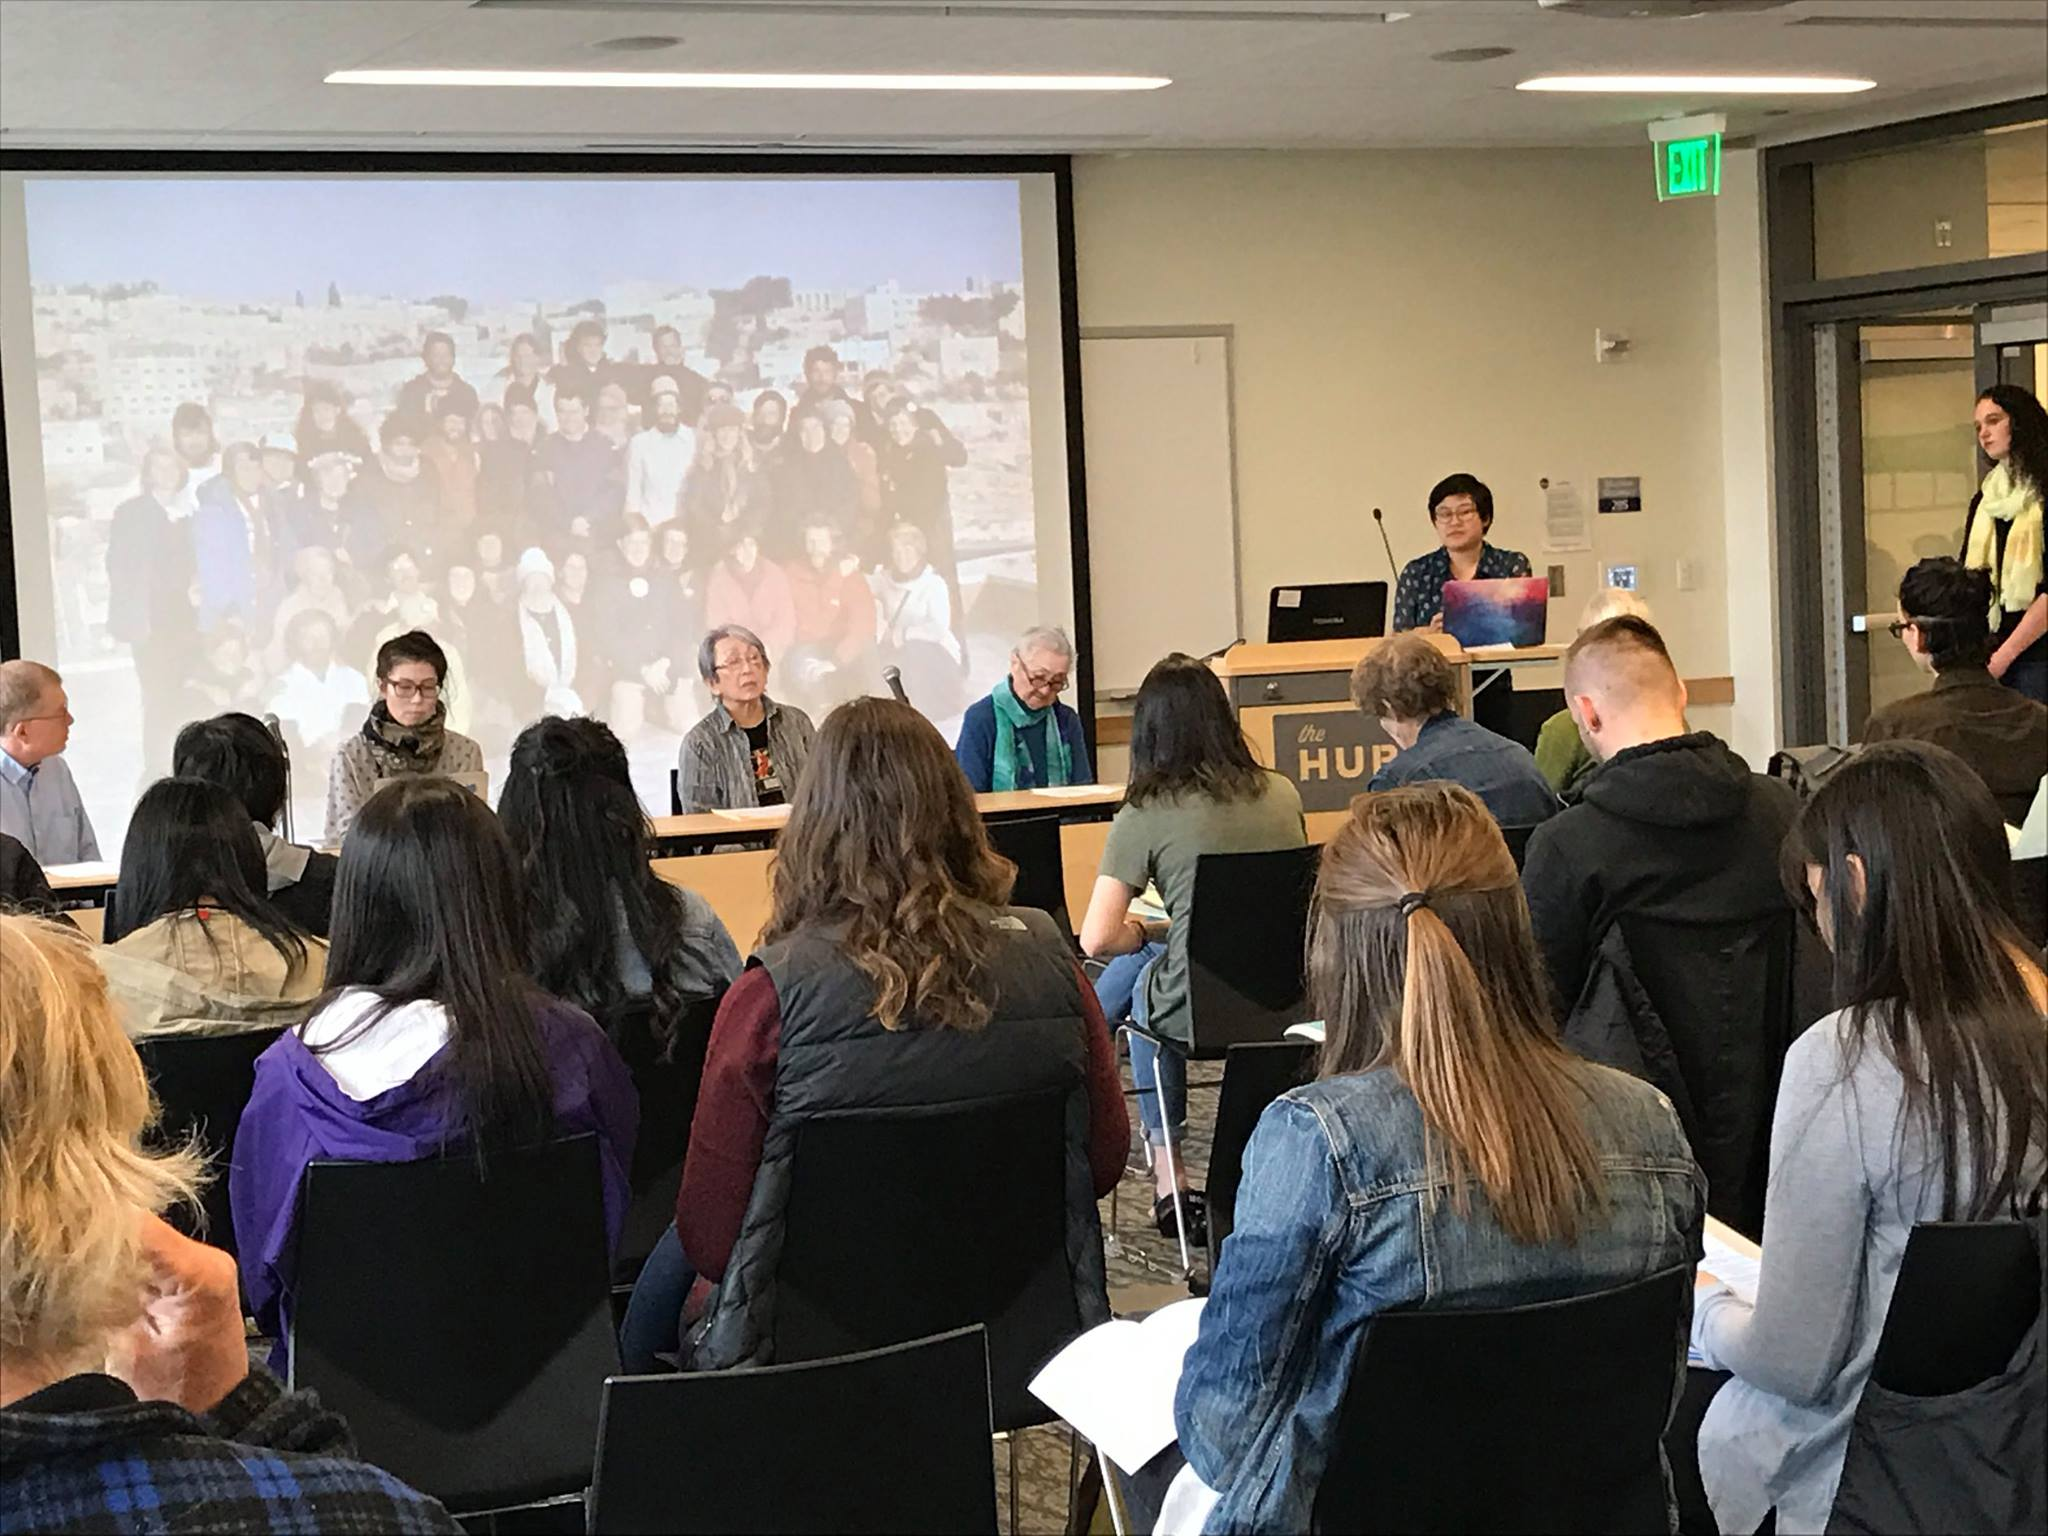 """University of Washington student Jenny Chang speaks at """"Nuclear Insights,"""" an event at UW featuring those directly affected by the bombings in Hiroshima and Nagasaki."""